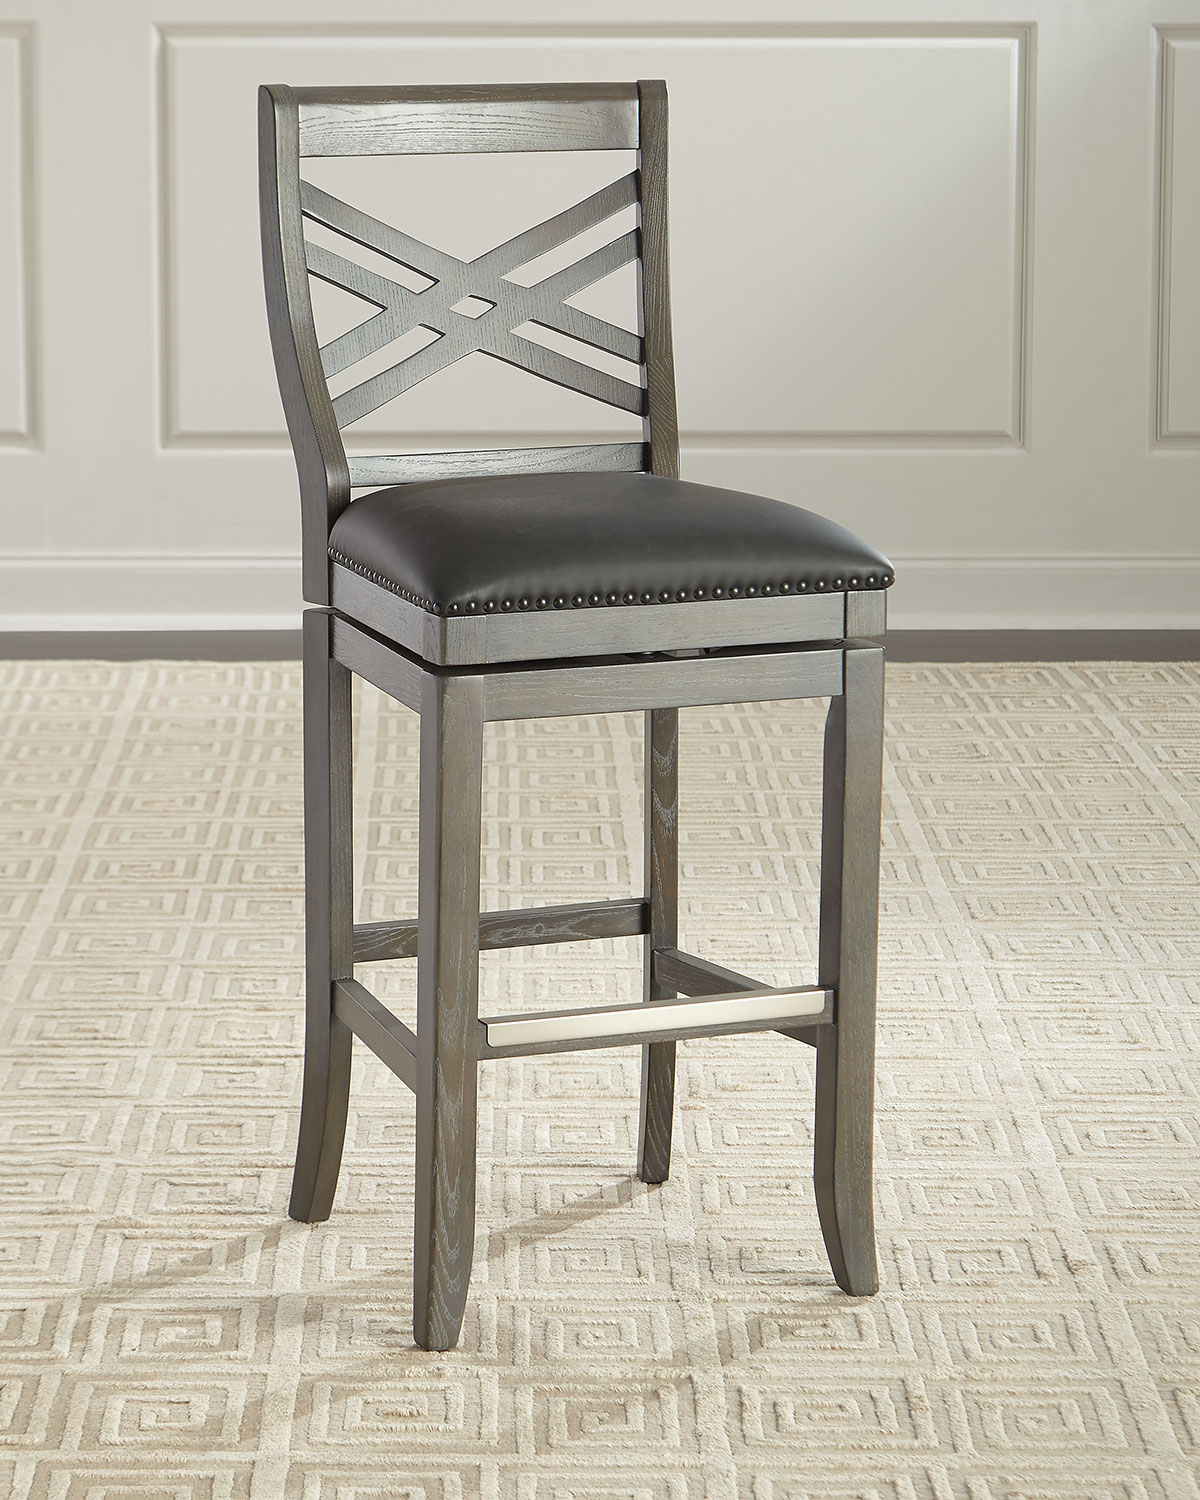 Pryce Leather Bar Stool And Matching Items Matching Items Neiman